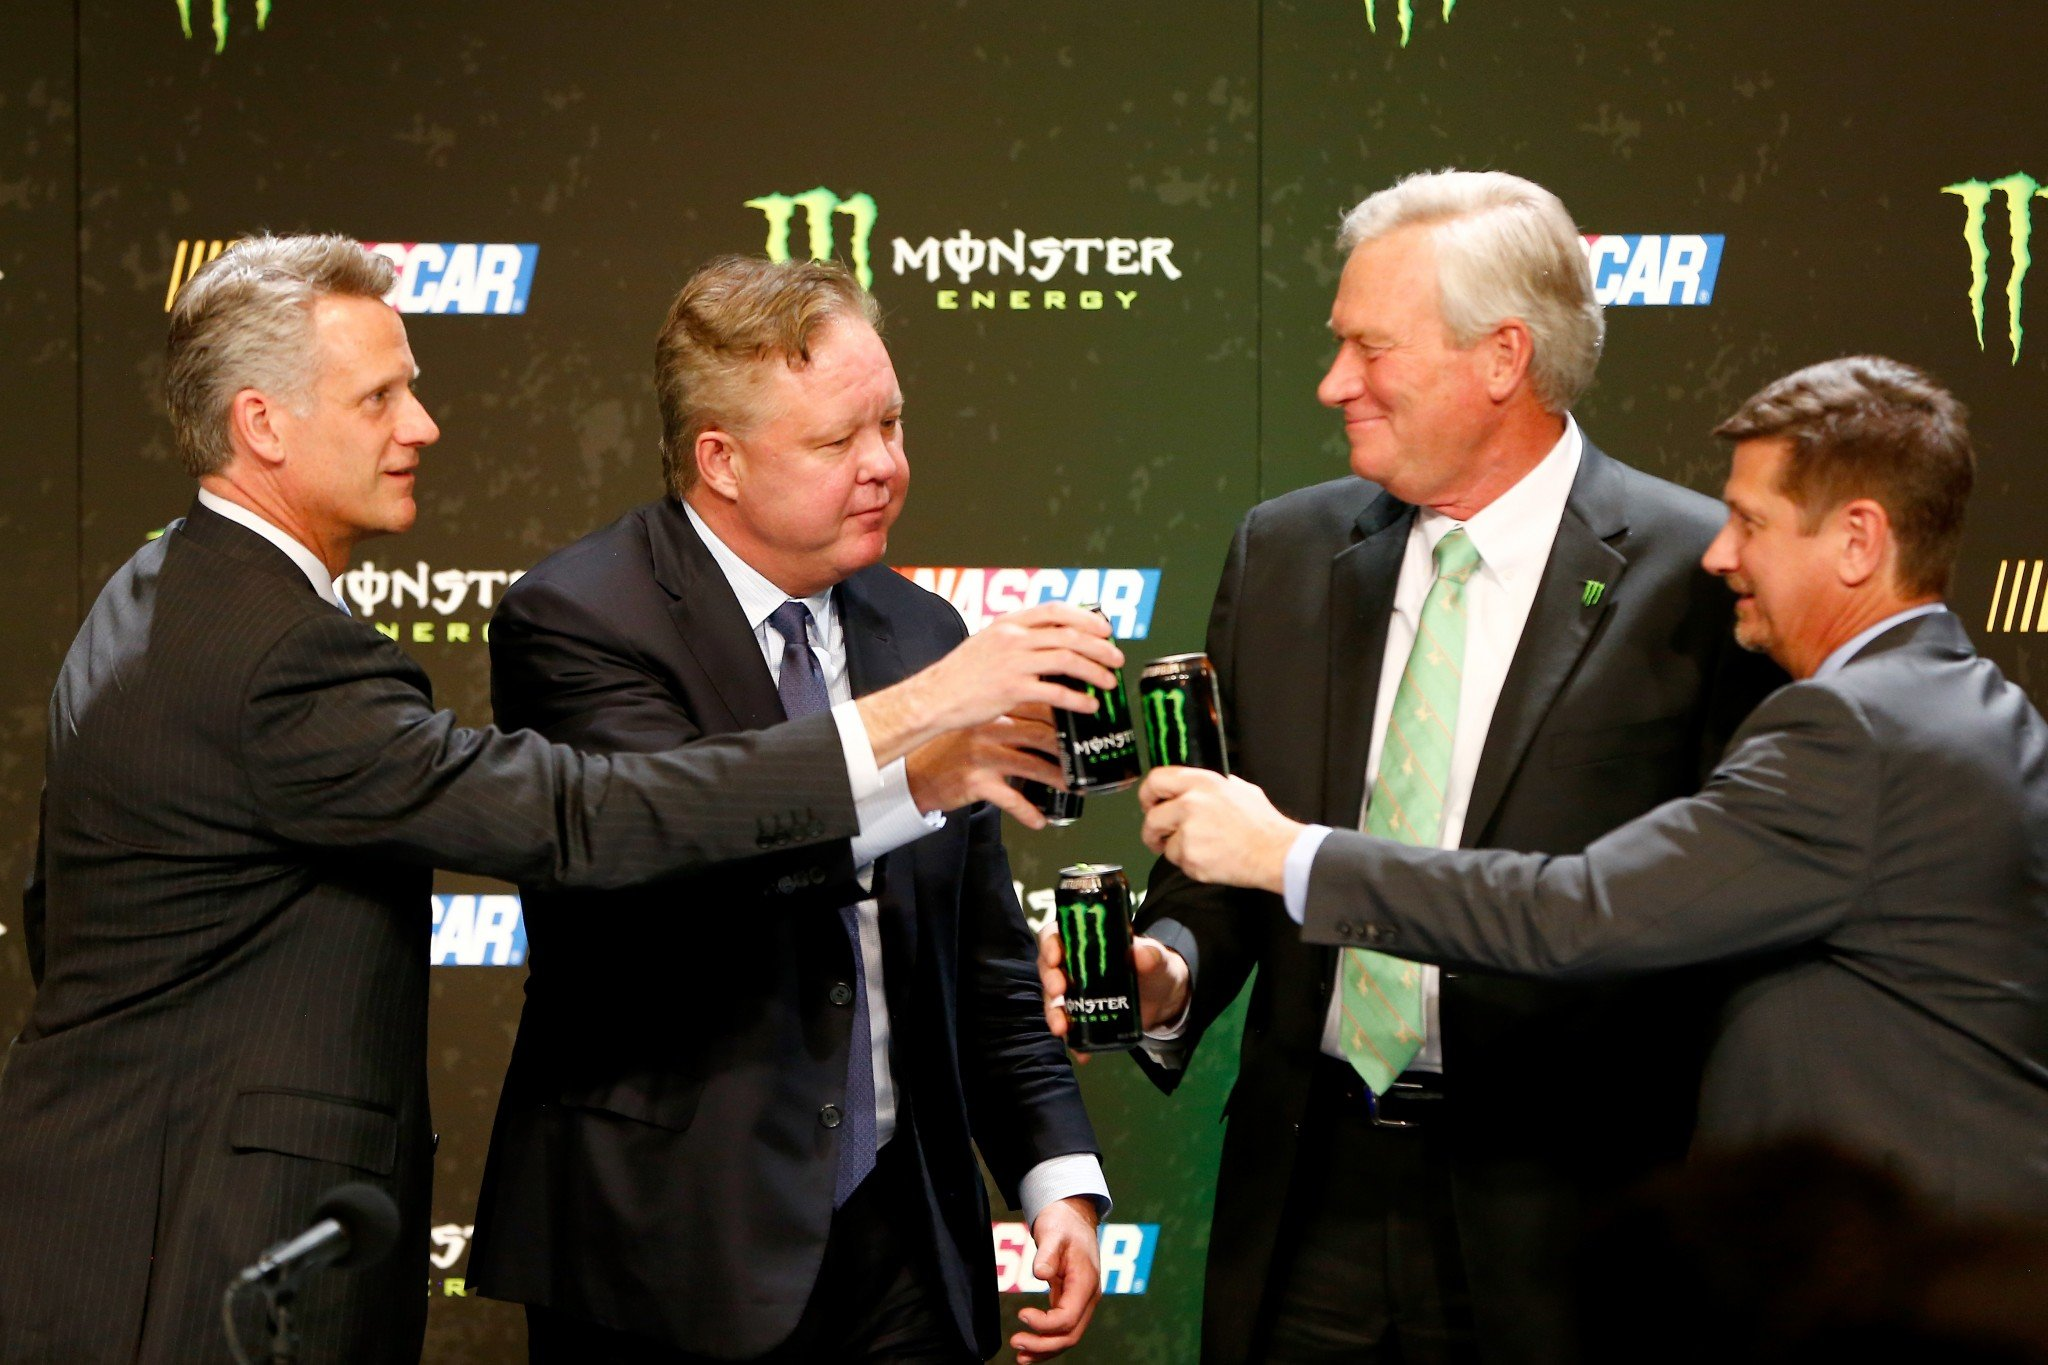 NASCAR and Monster executives toast the sponsorship announcement. (Getty)